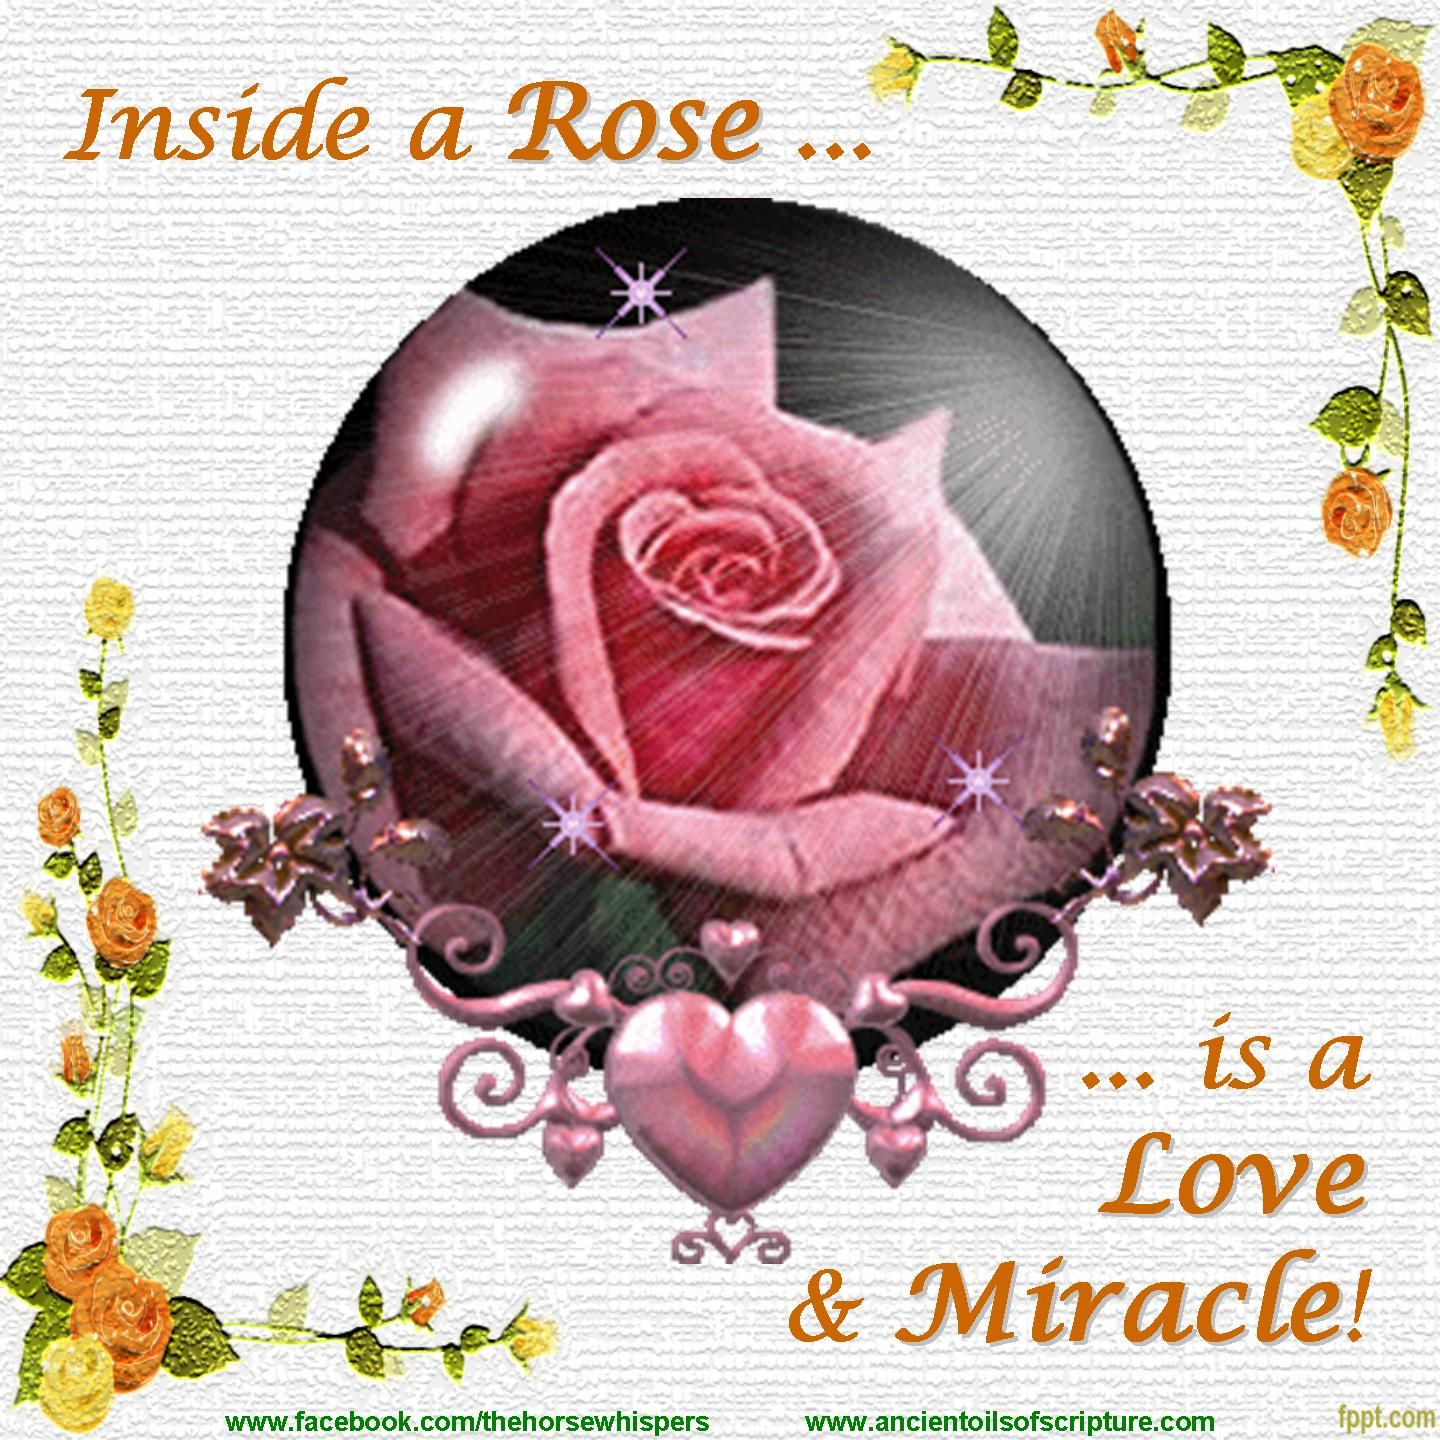 Inside a Rose is a Love & Miracle! 528 HZ is the note of